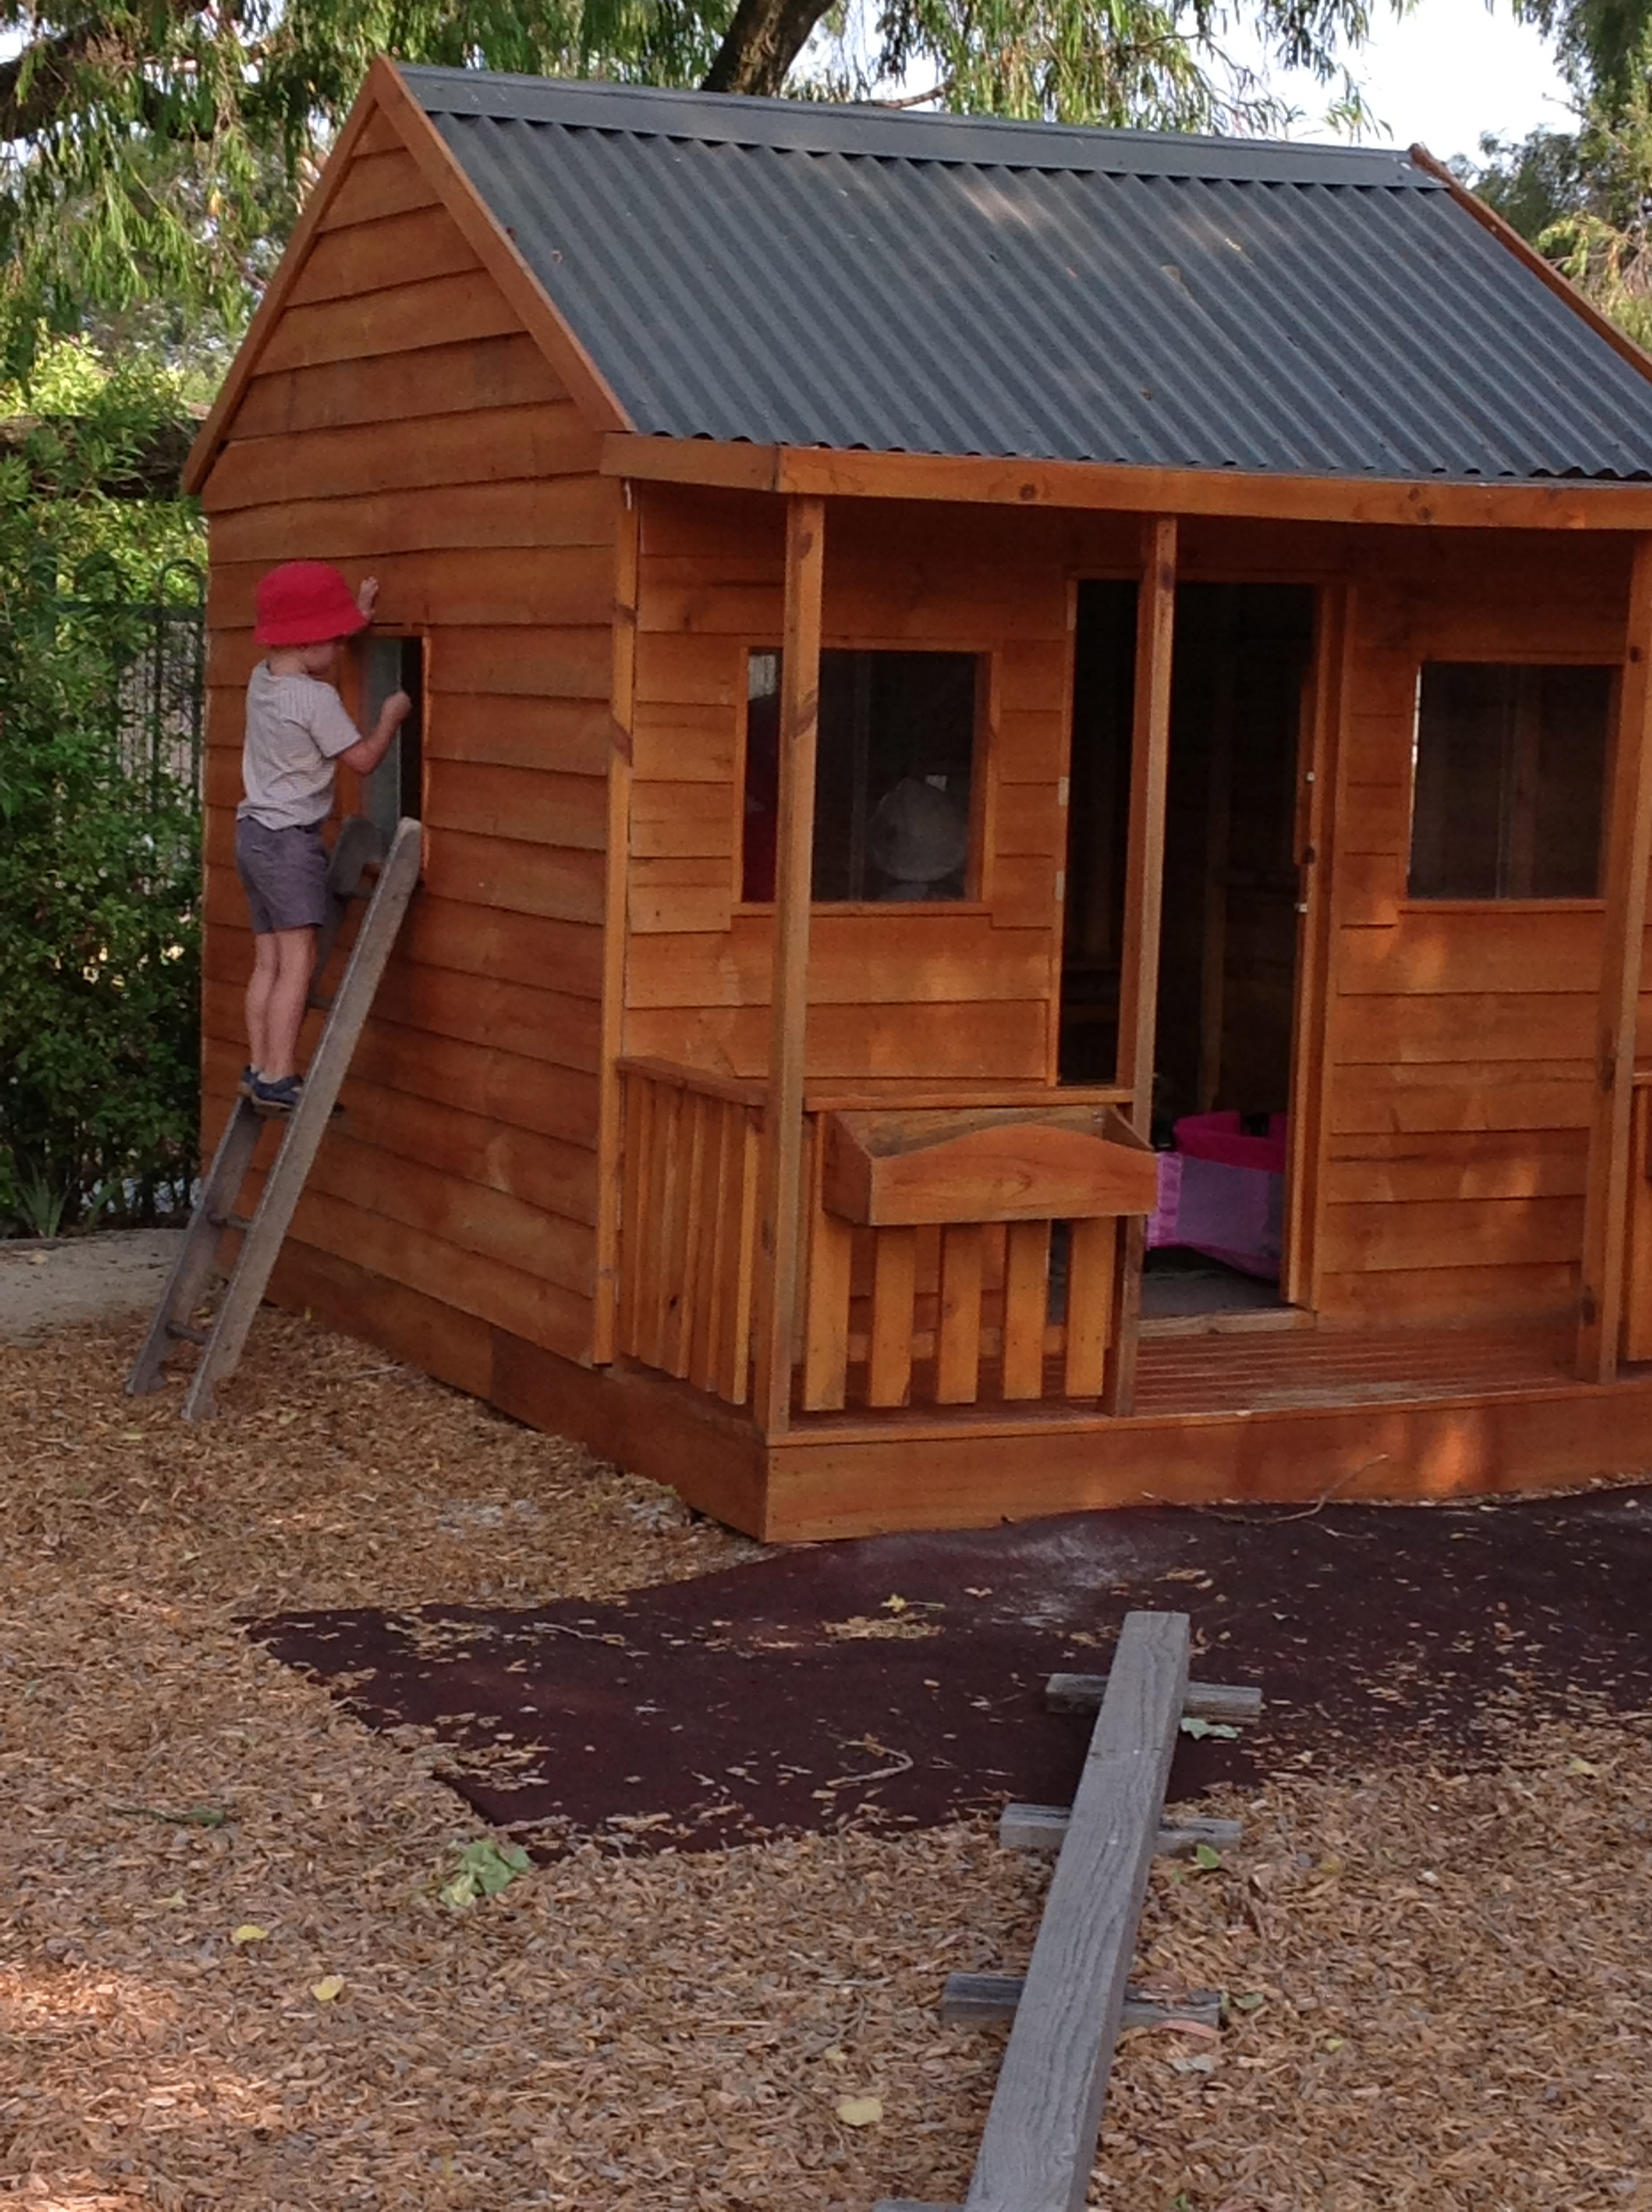 Our Cubby House